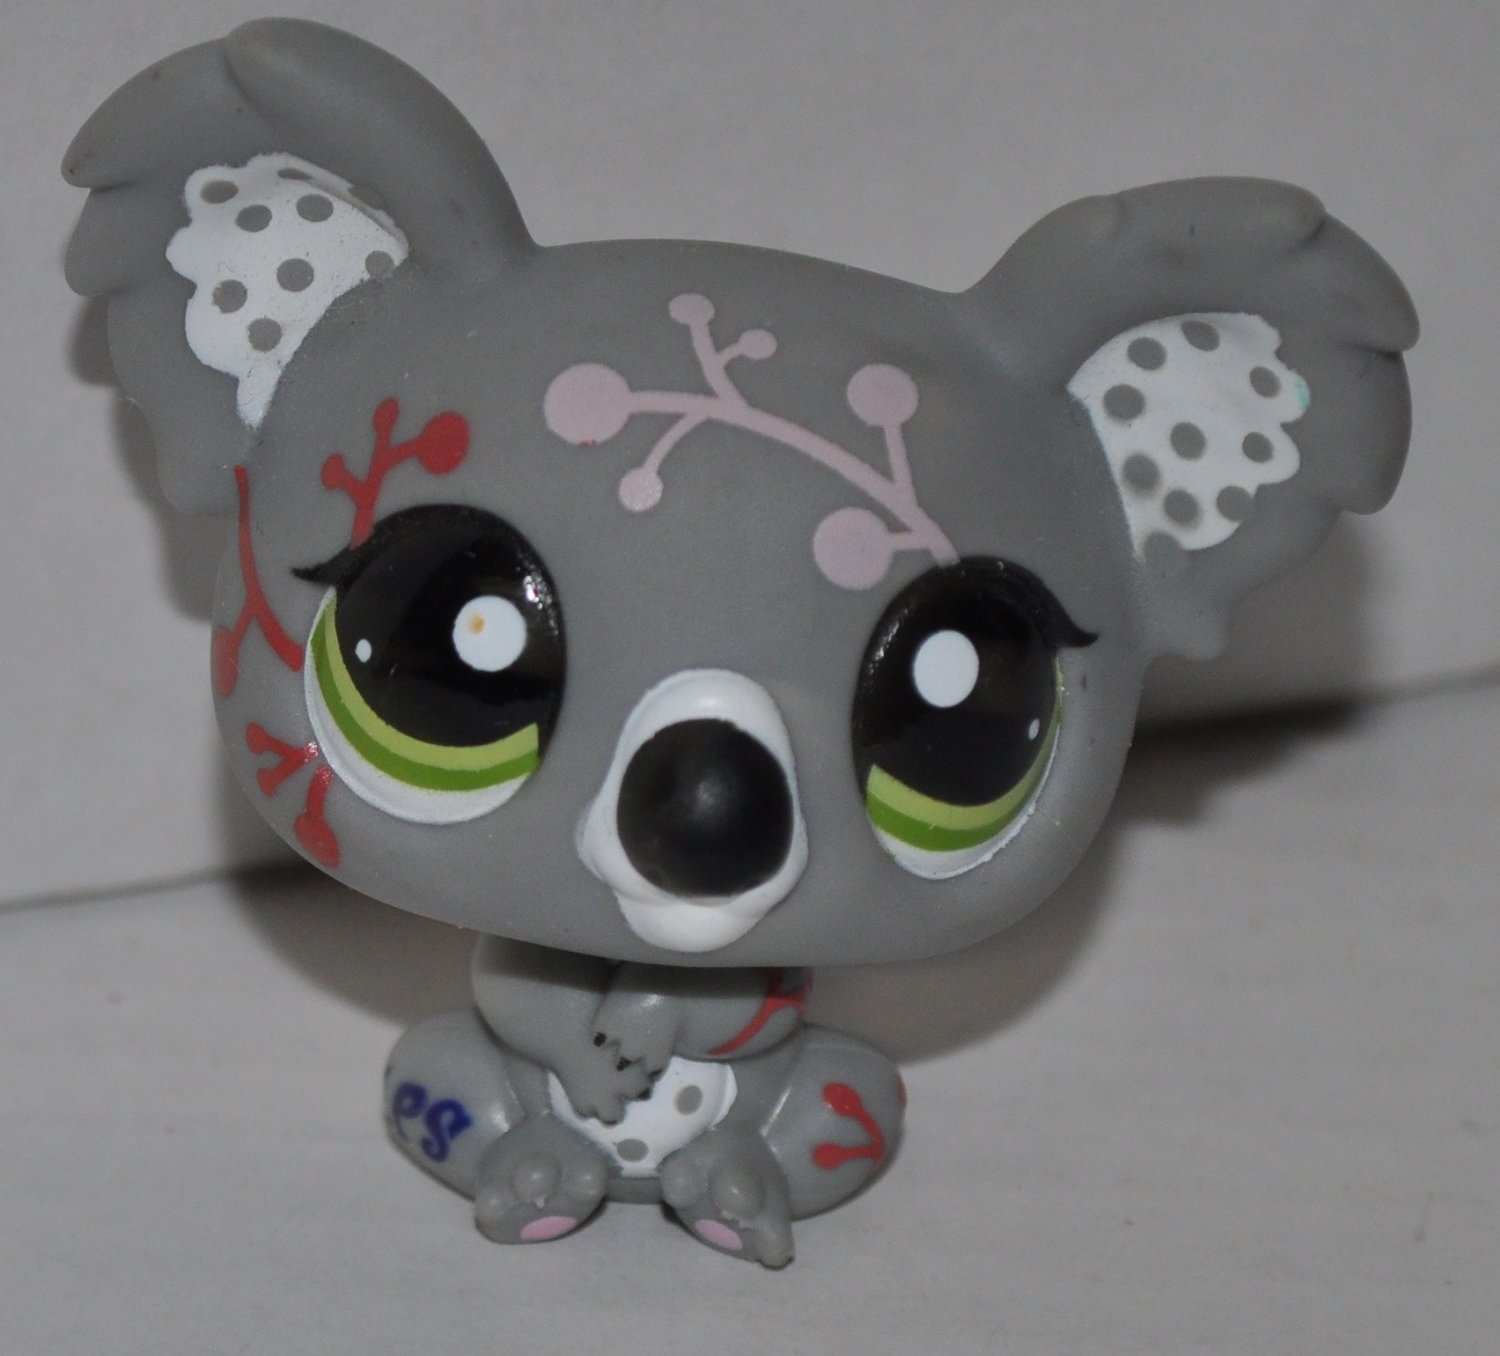 Koala Bear #1837 Littlest Pet Shop (Retired) Collector Toy - LPS Collectible Figure - Loose